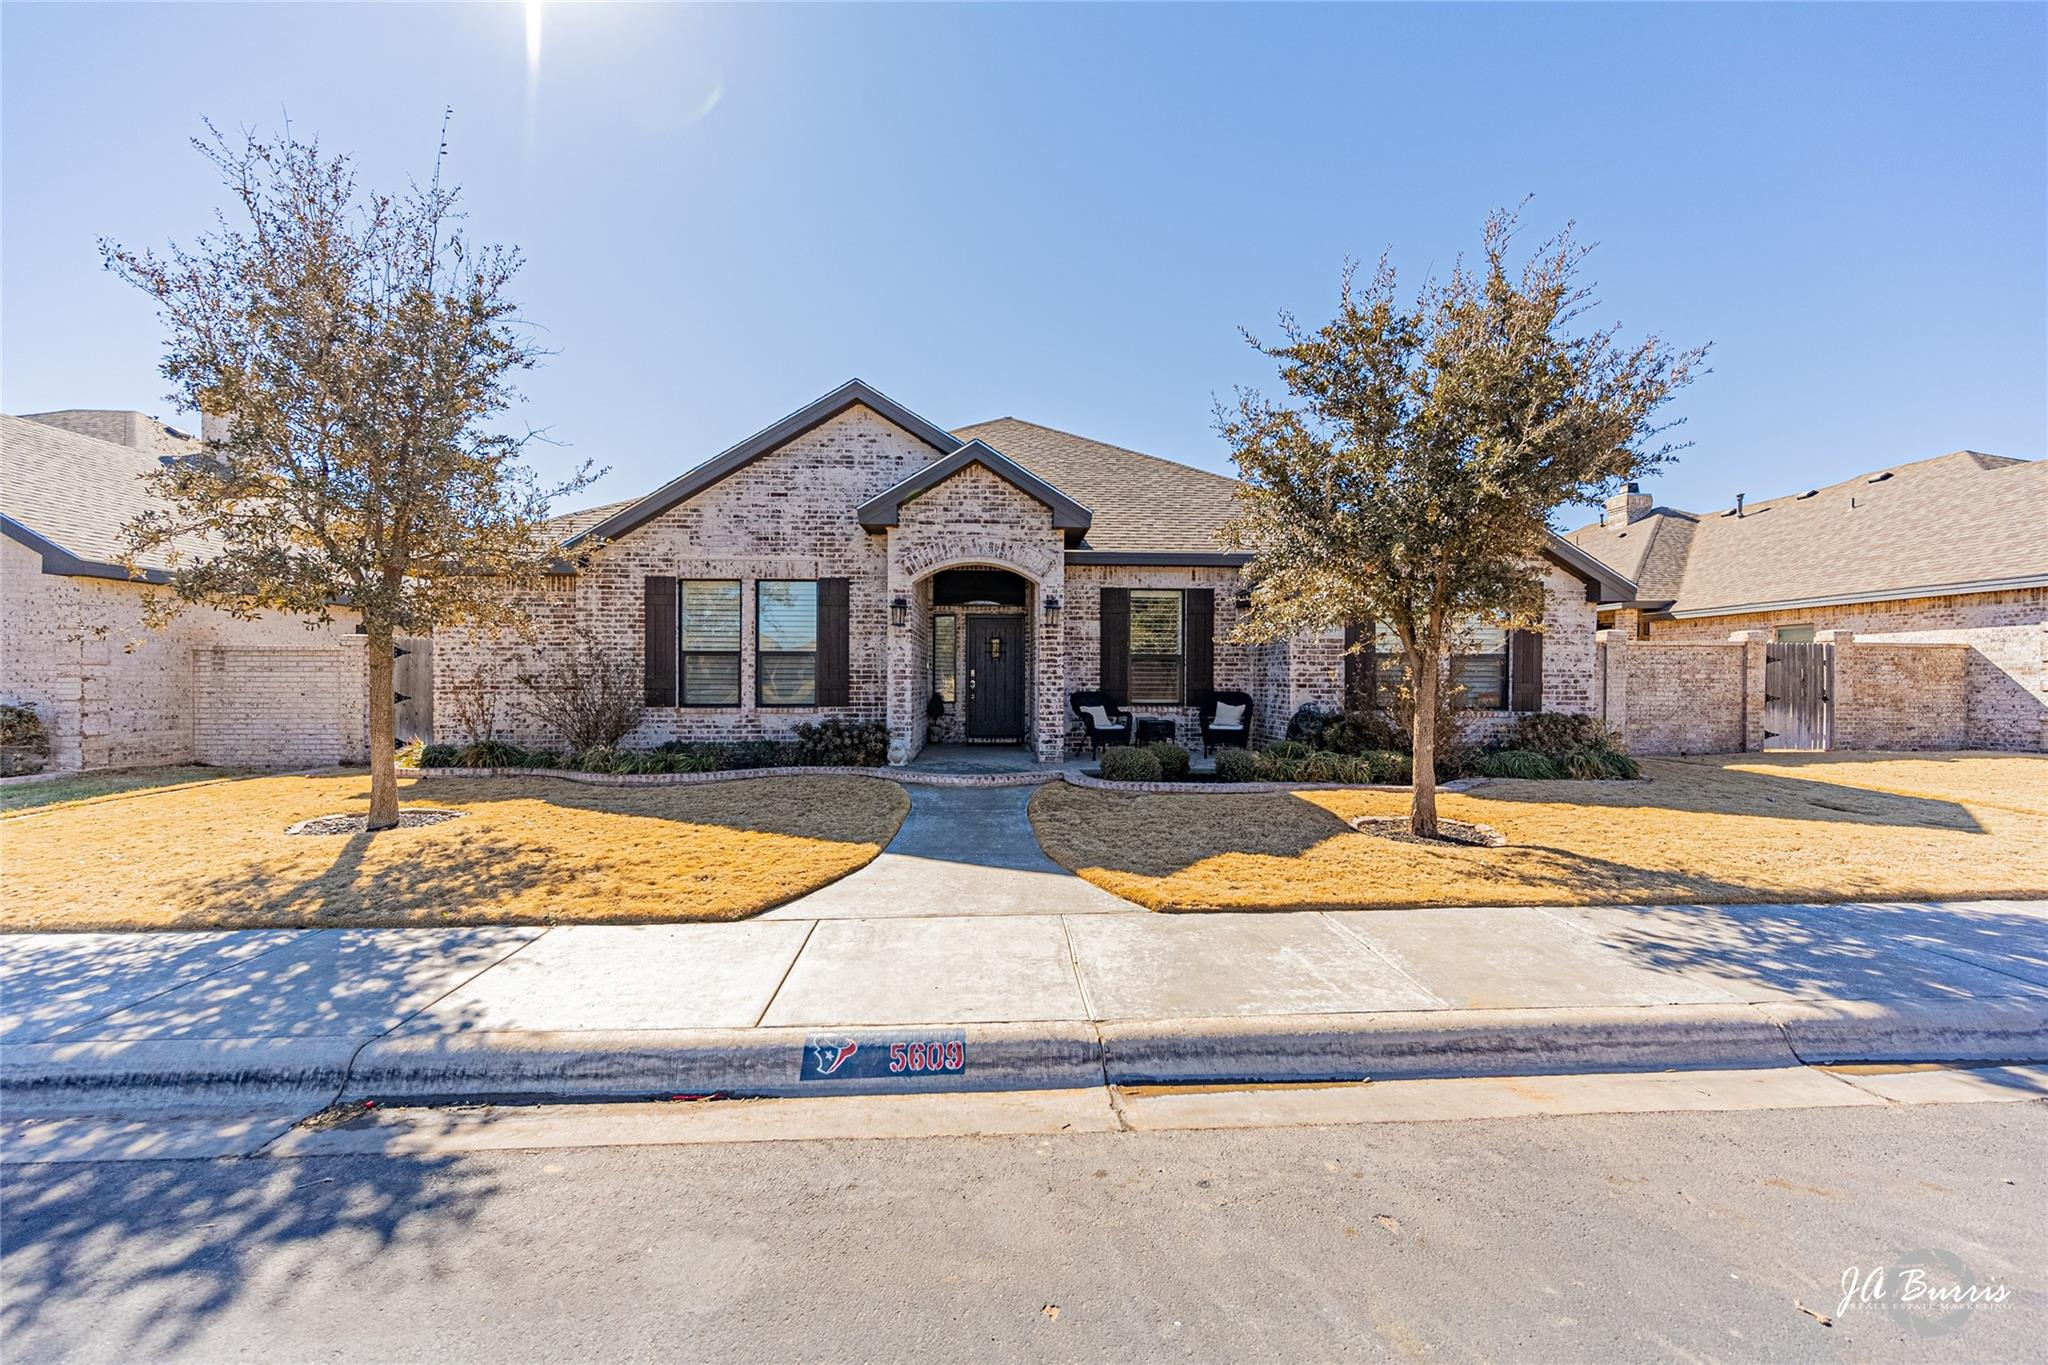 5609 Camino Reale Property Photo - Midland, TX real estate listing